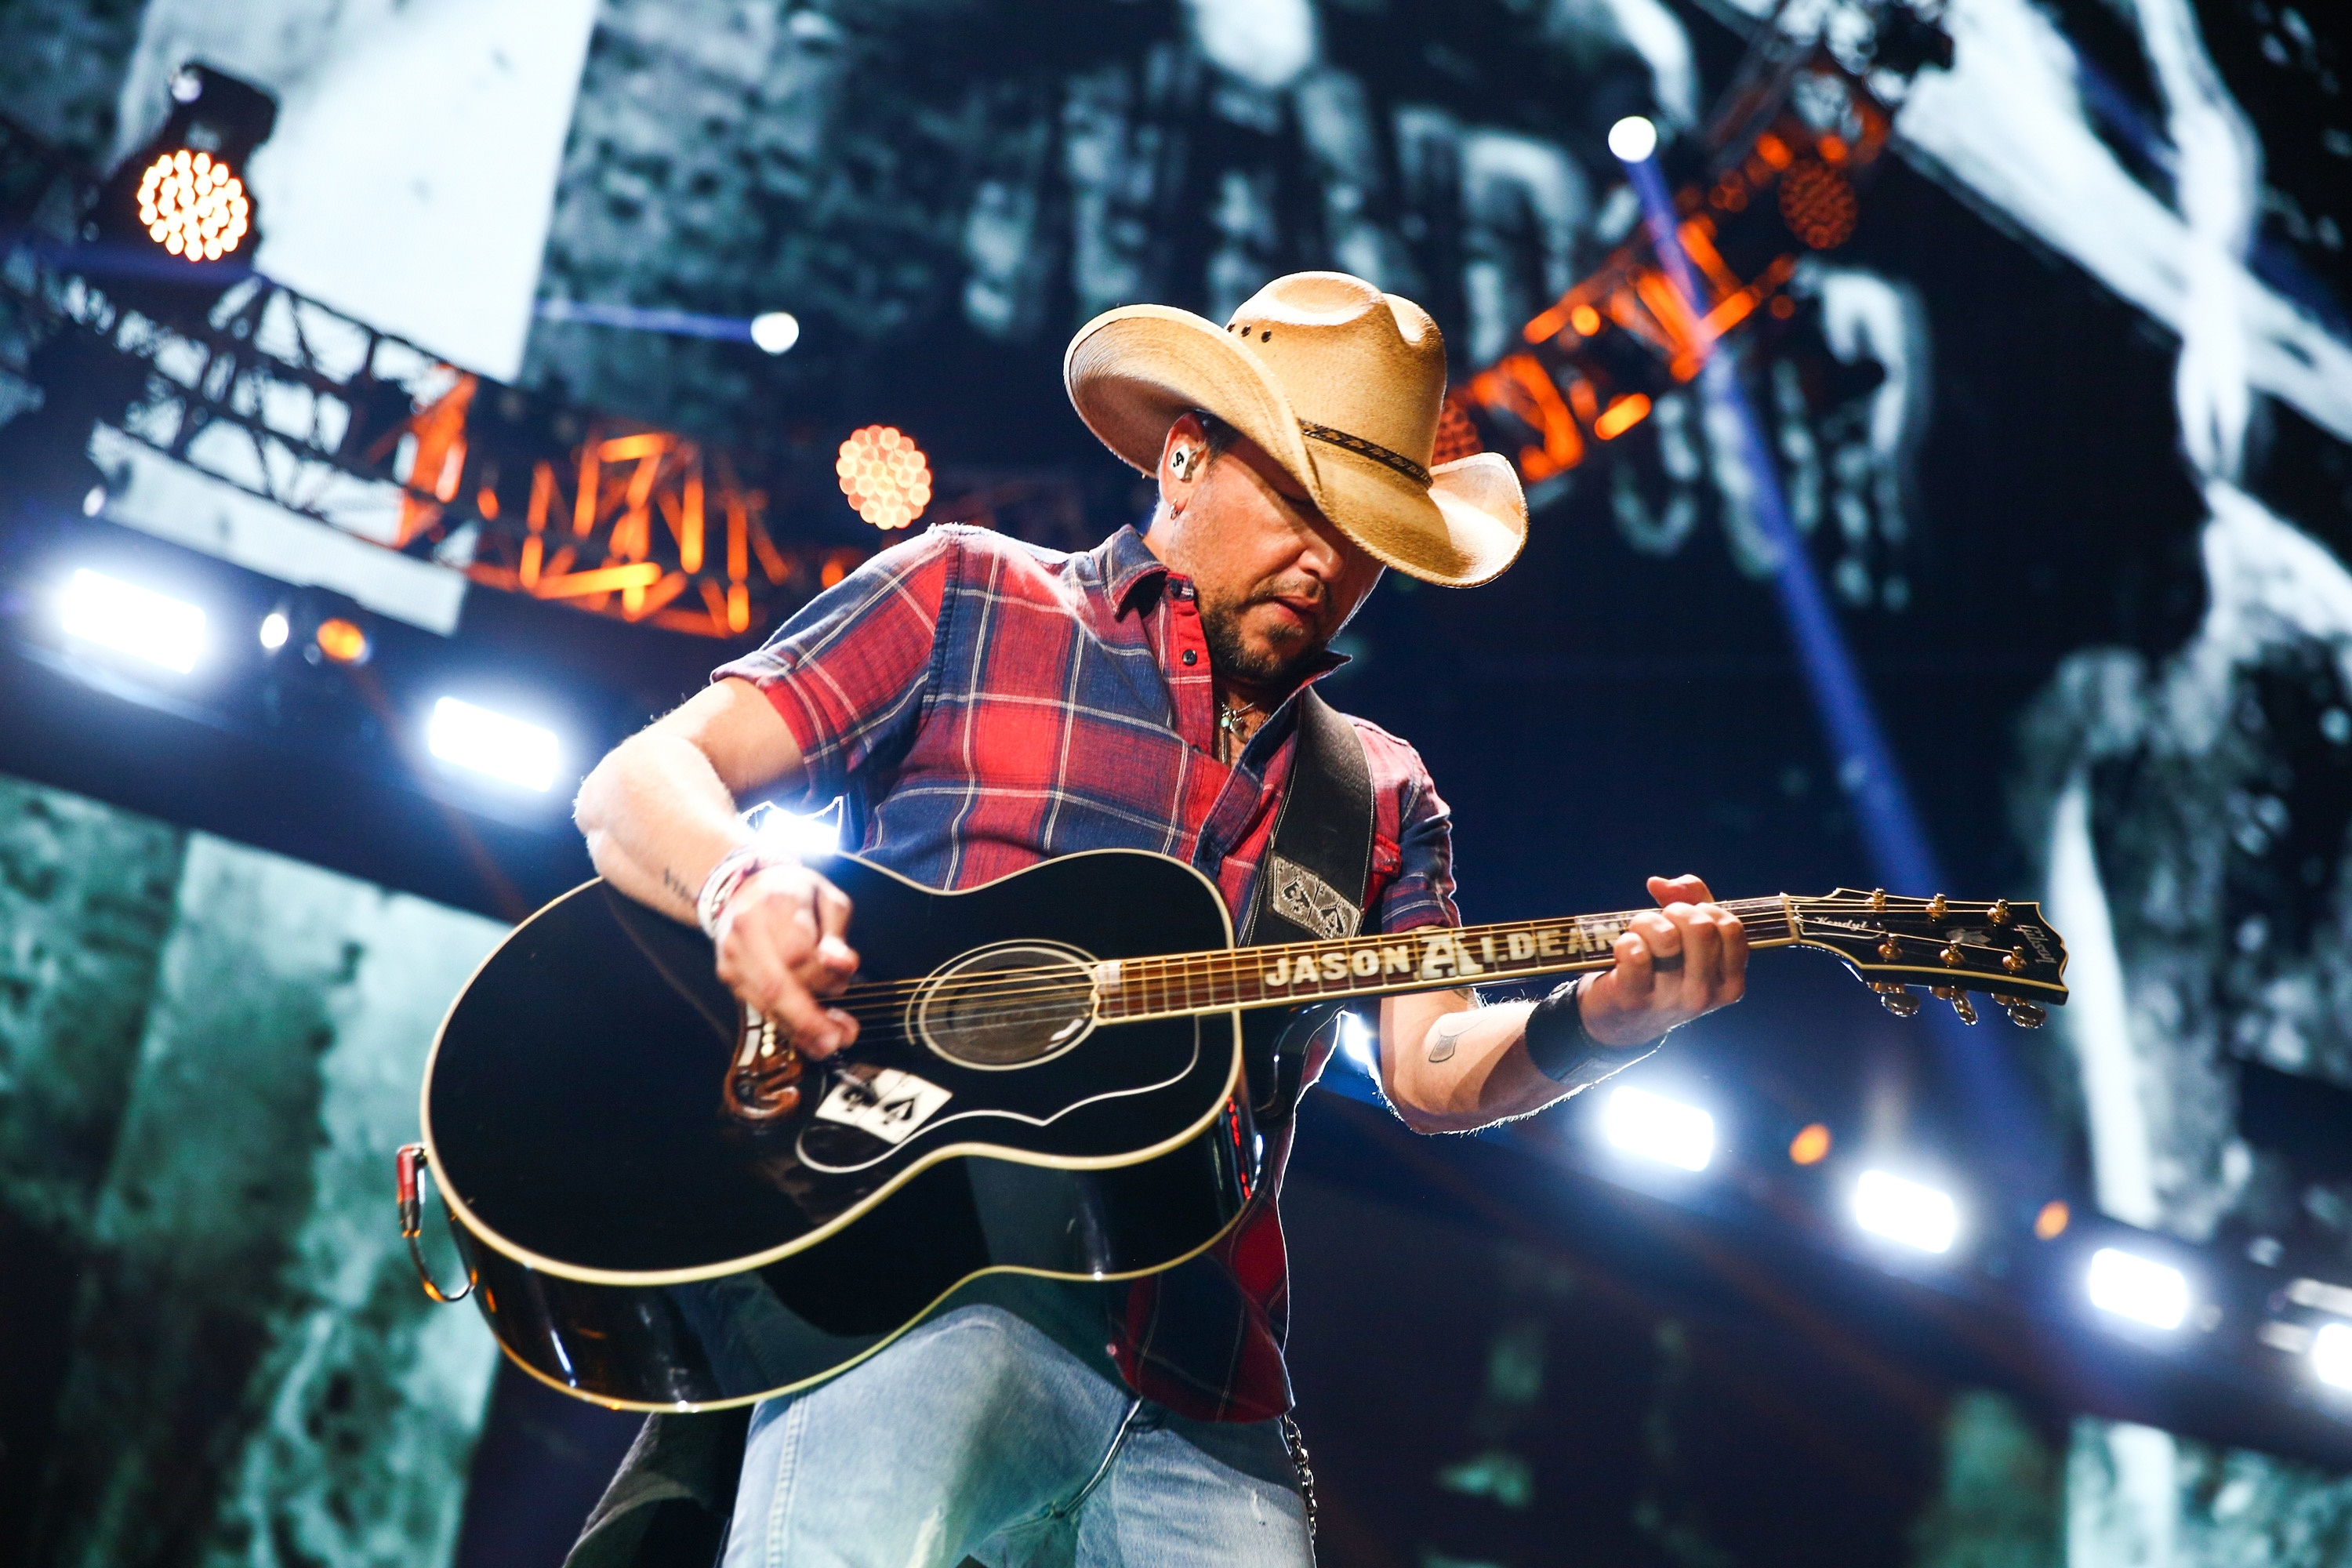 Jason Aldean's Bus is Packed With Cribs and Playpens for His Kids